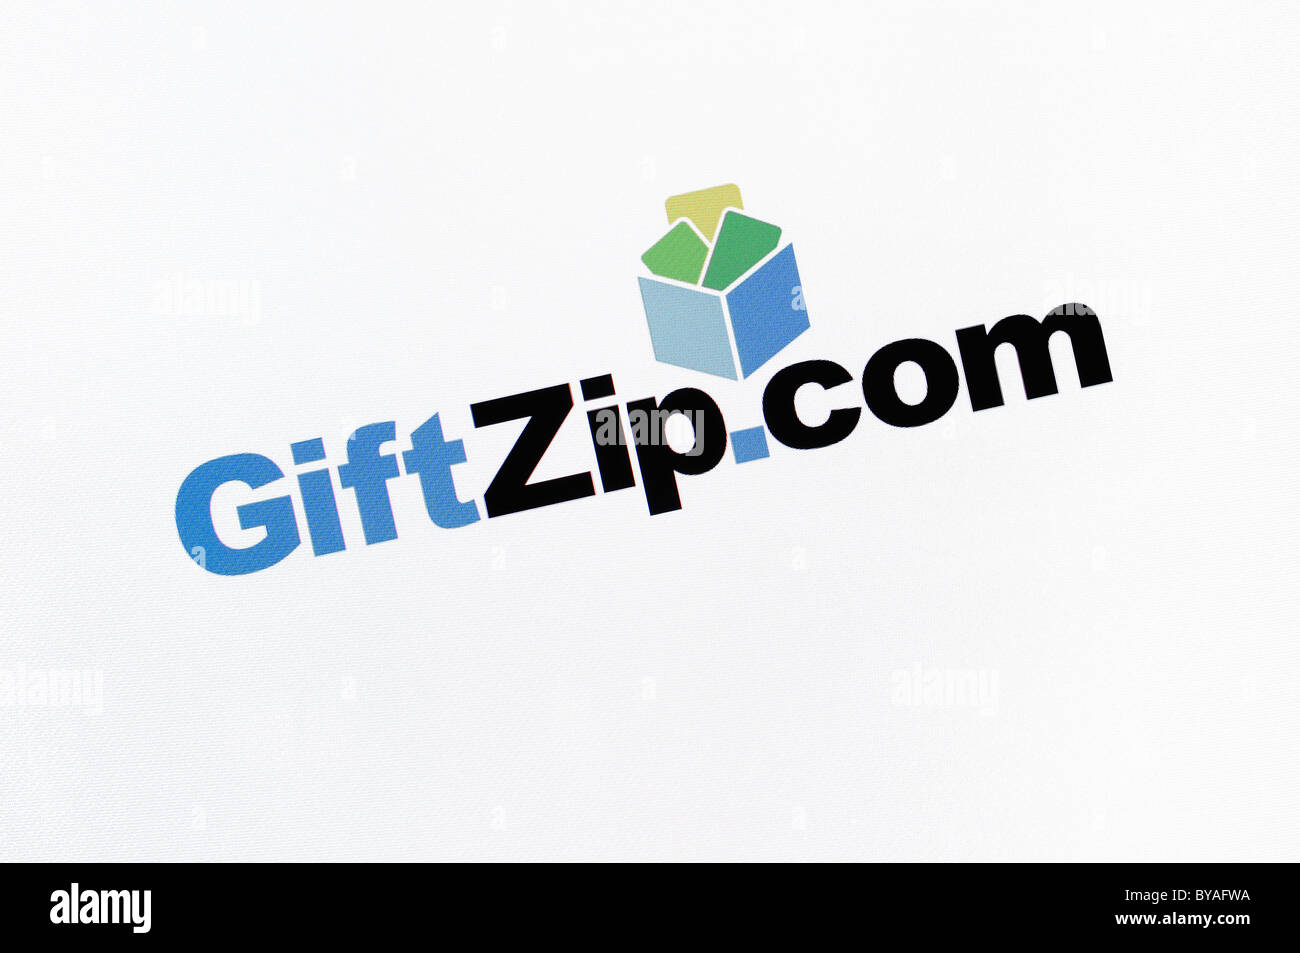 GiftZip.com Website Screenshot - Stock Image